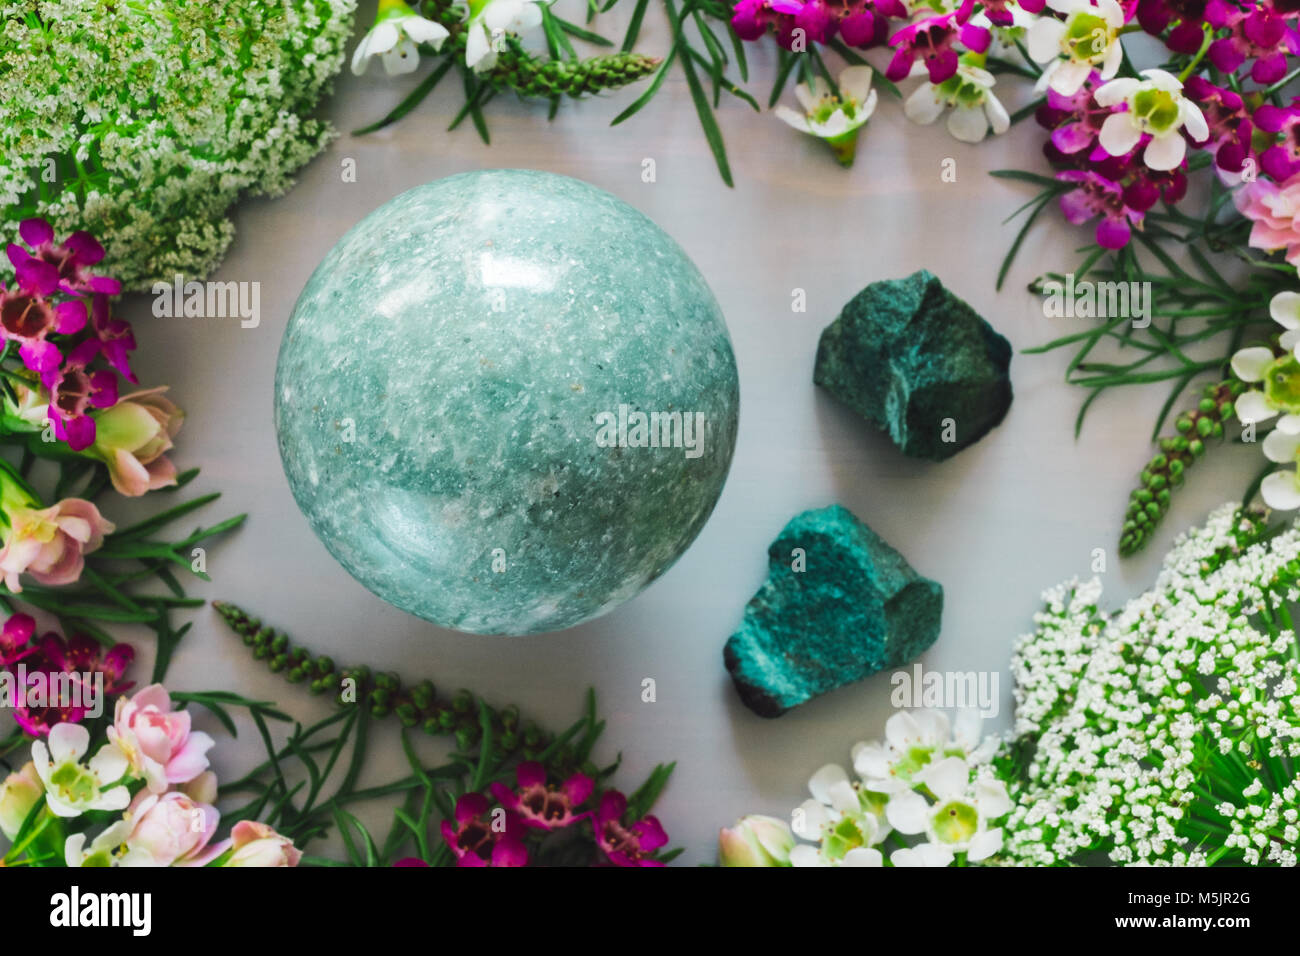 Green Aventurine Sphere with Rough Stones and Mixed Spring Flowers - Stock Image